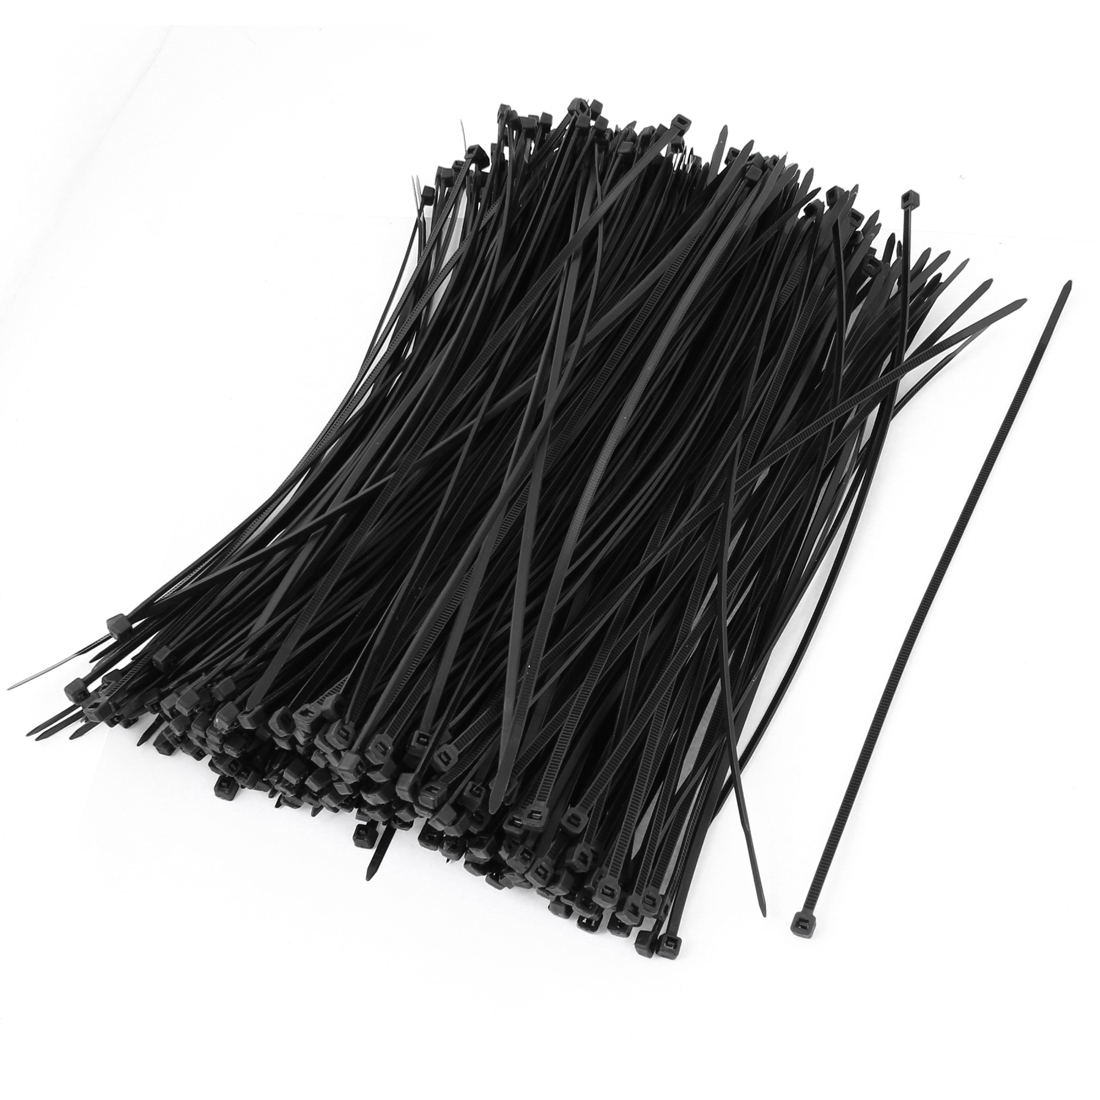 500 Pcs 25cm Length Black Nylon Self Locking Cable Organization Tie